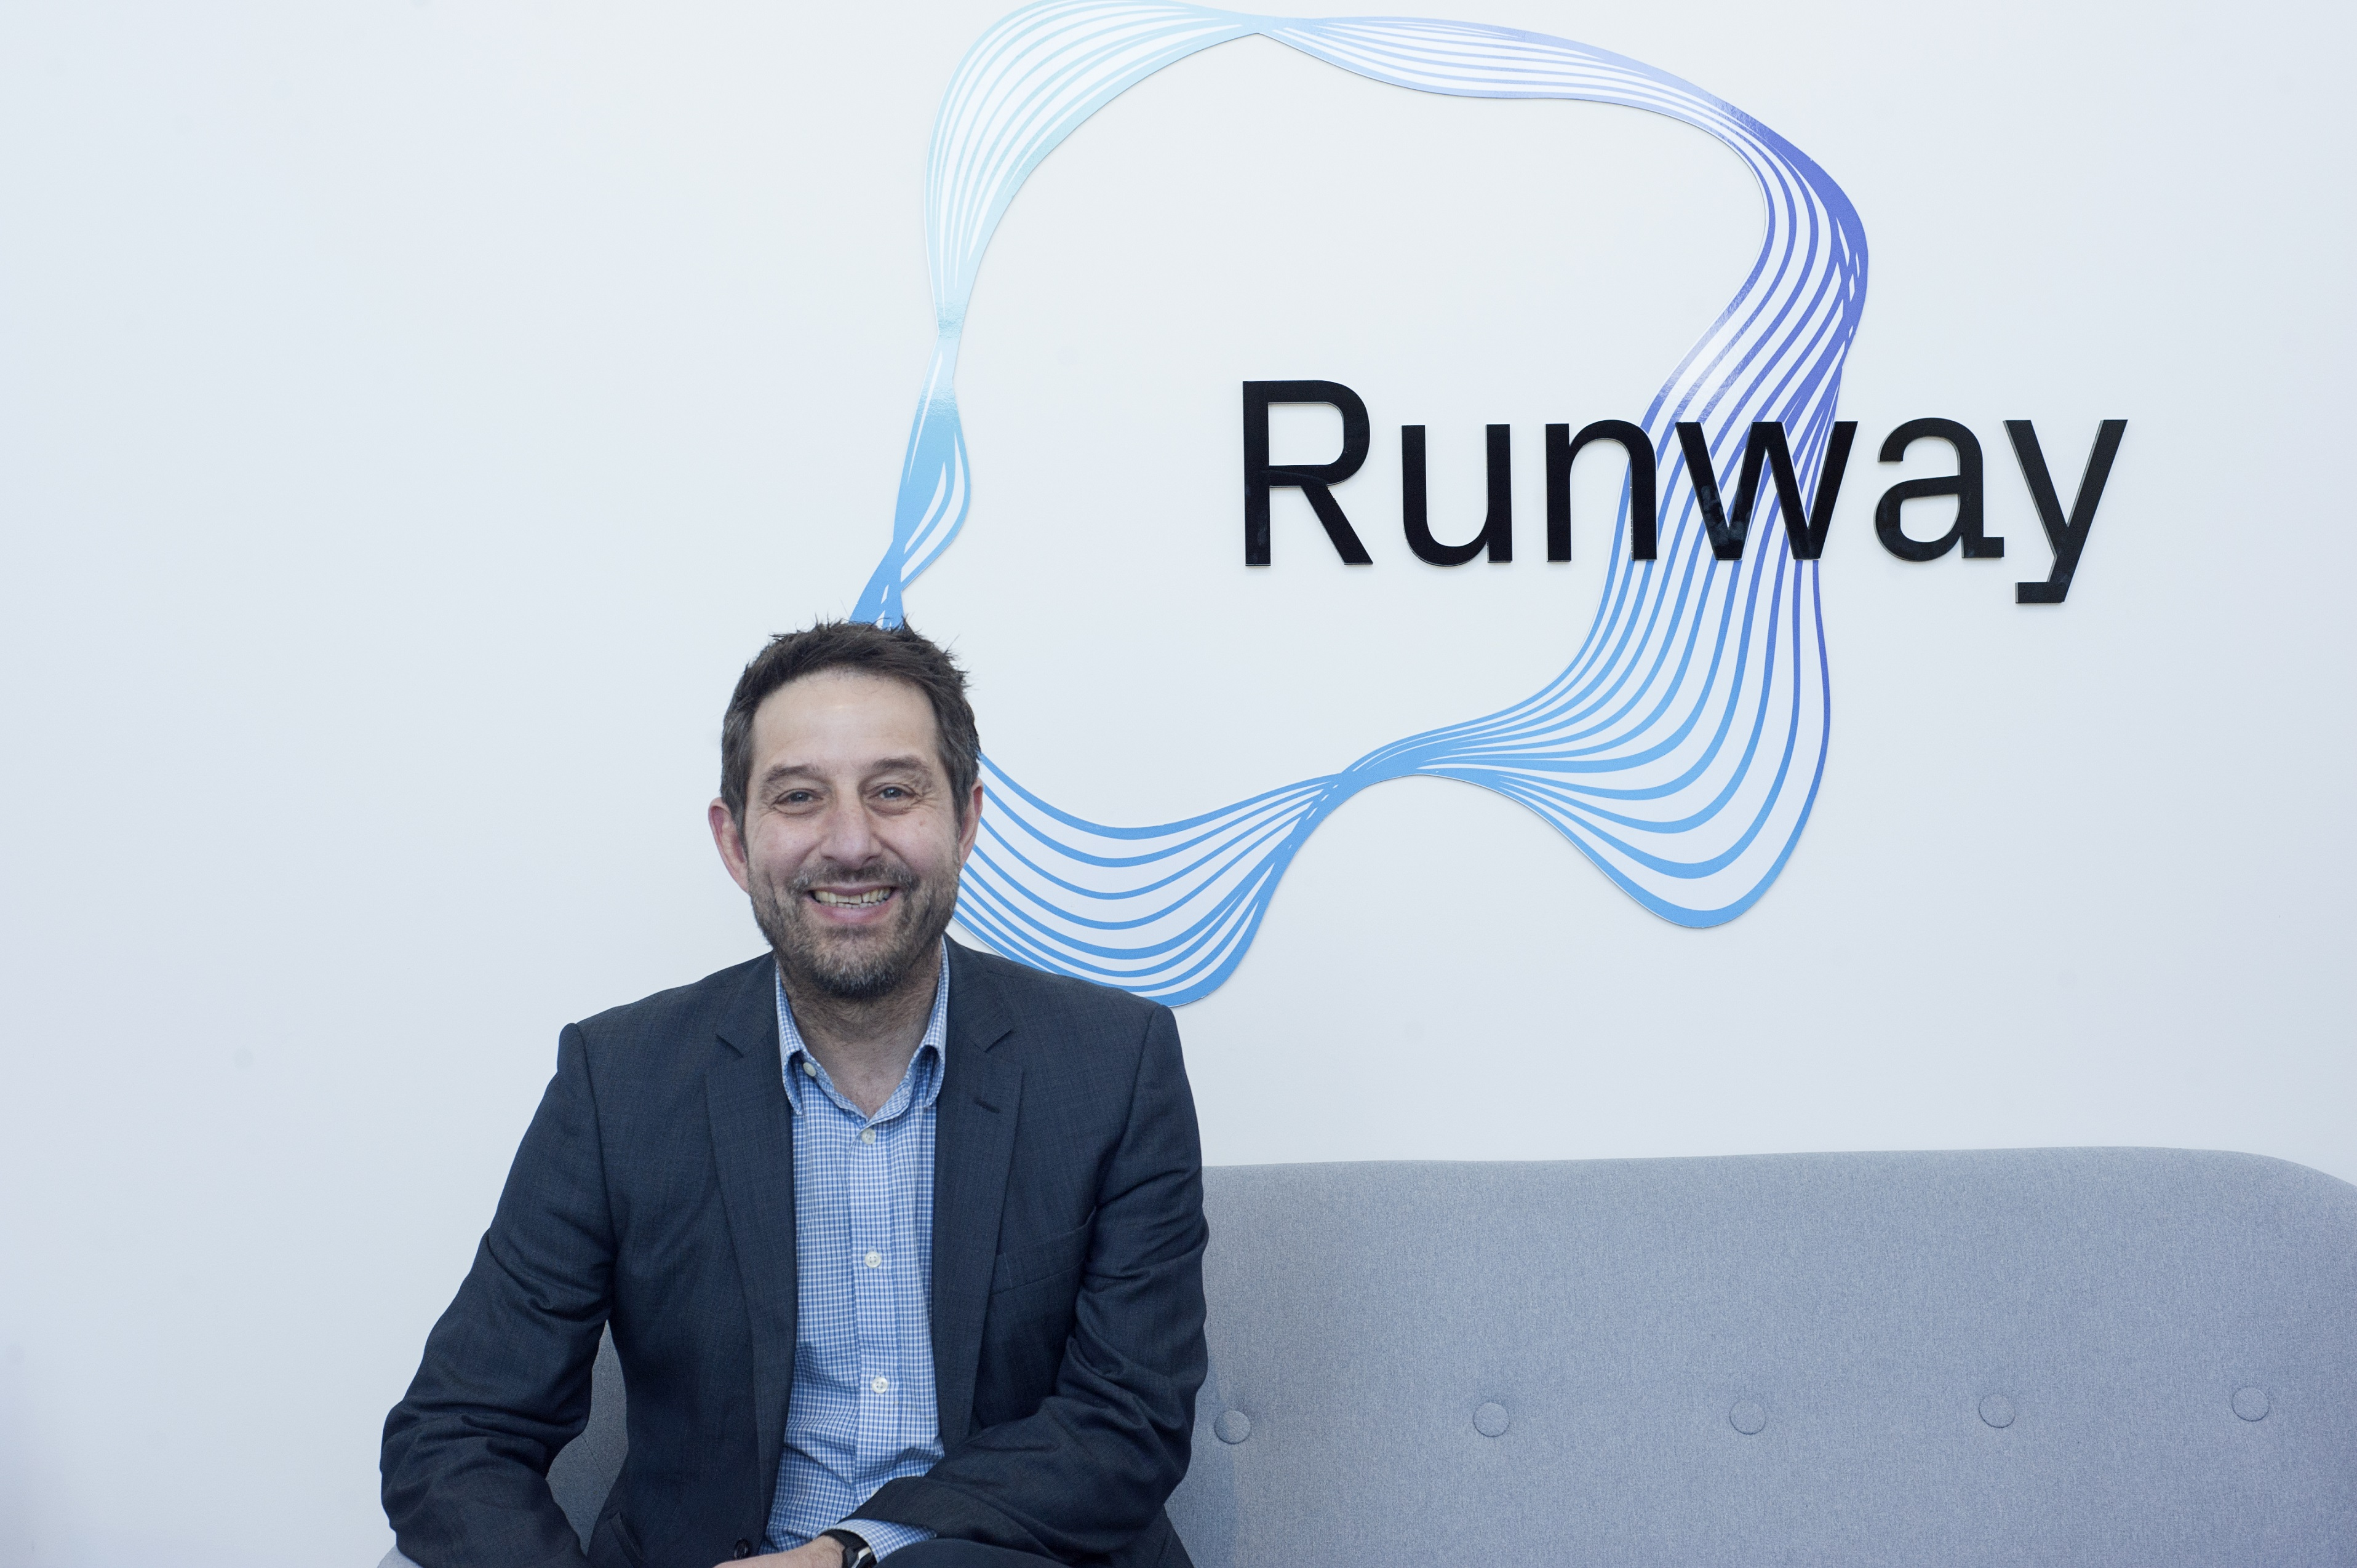 Bendigo Bank And Runway Help Startups Take The Global Stage Business Council Of Australia